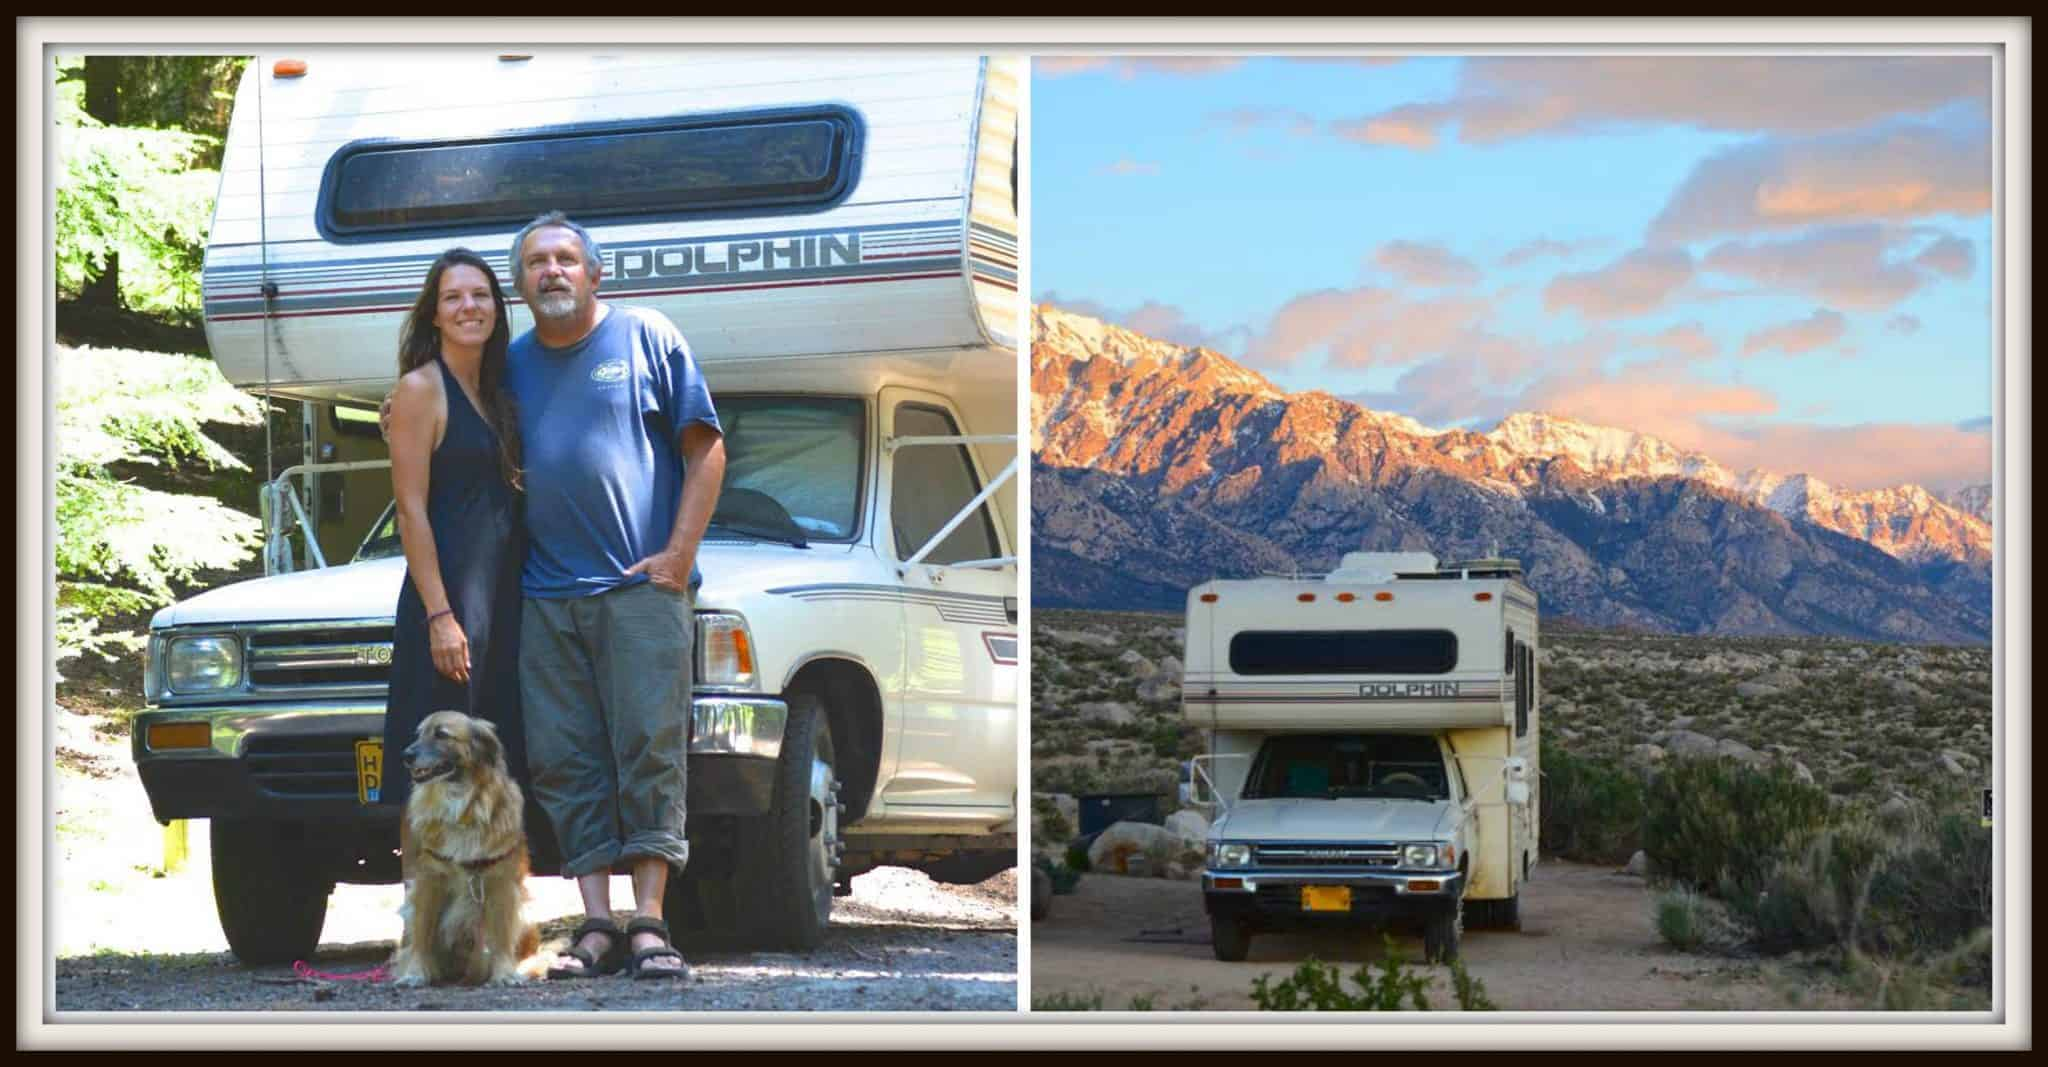 Finding freedom living in an RV